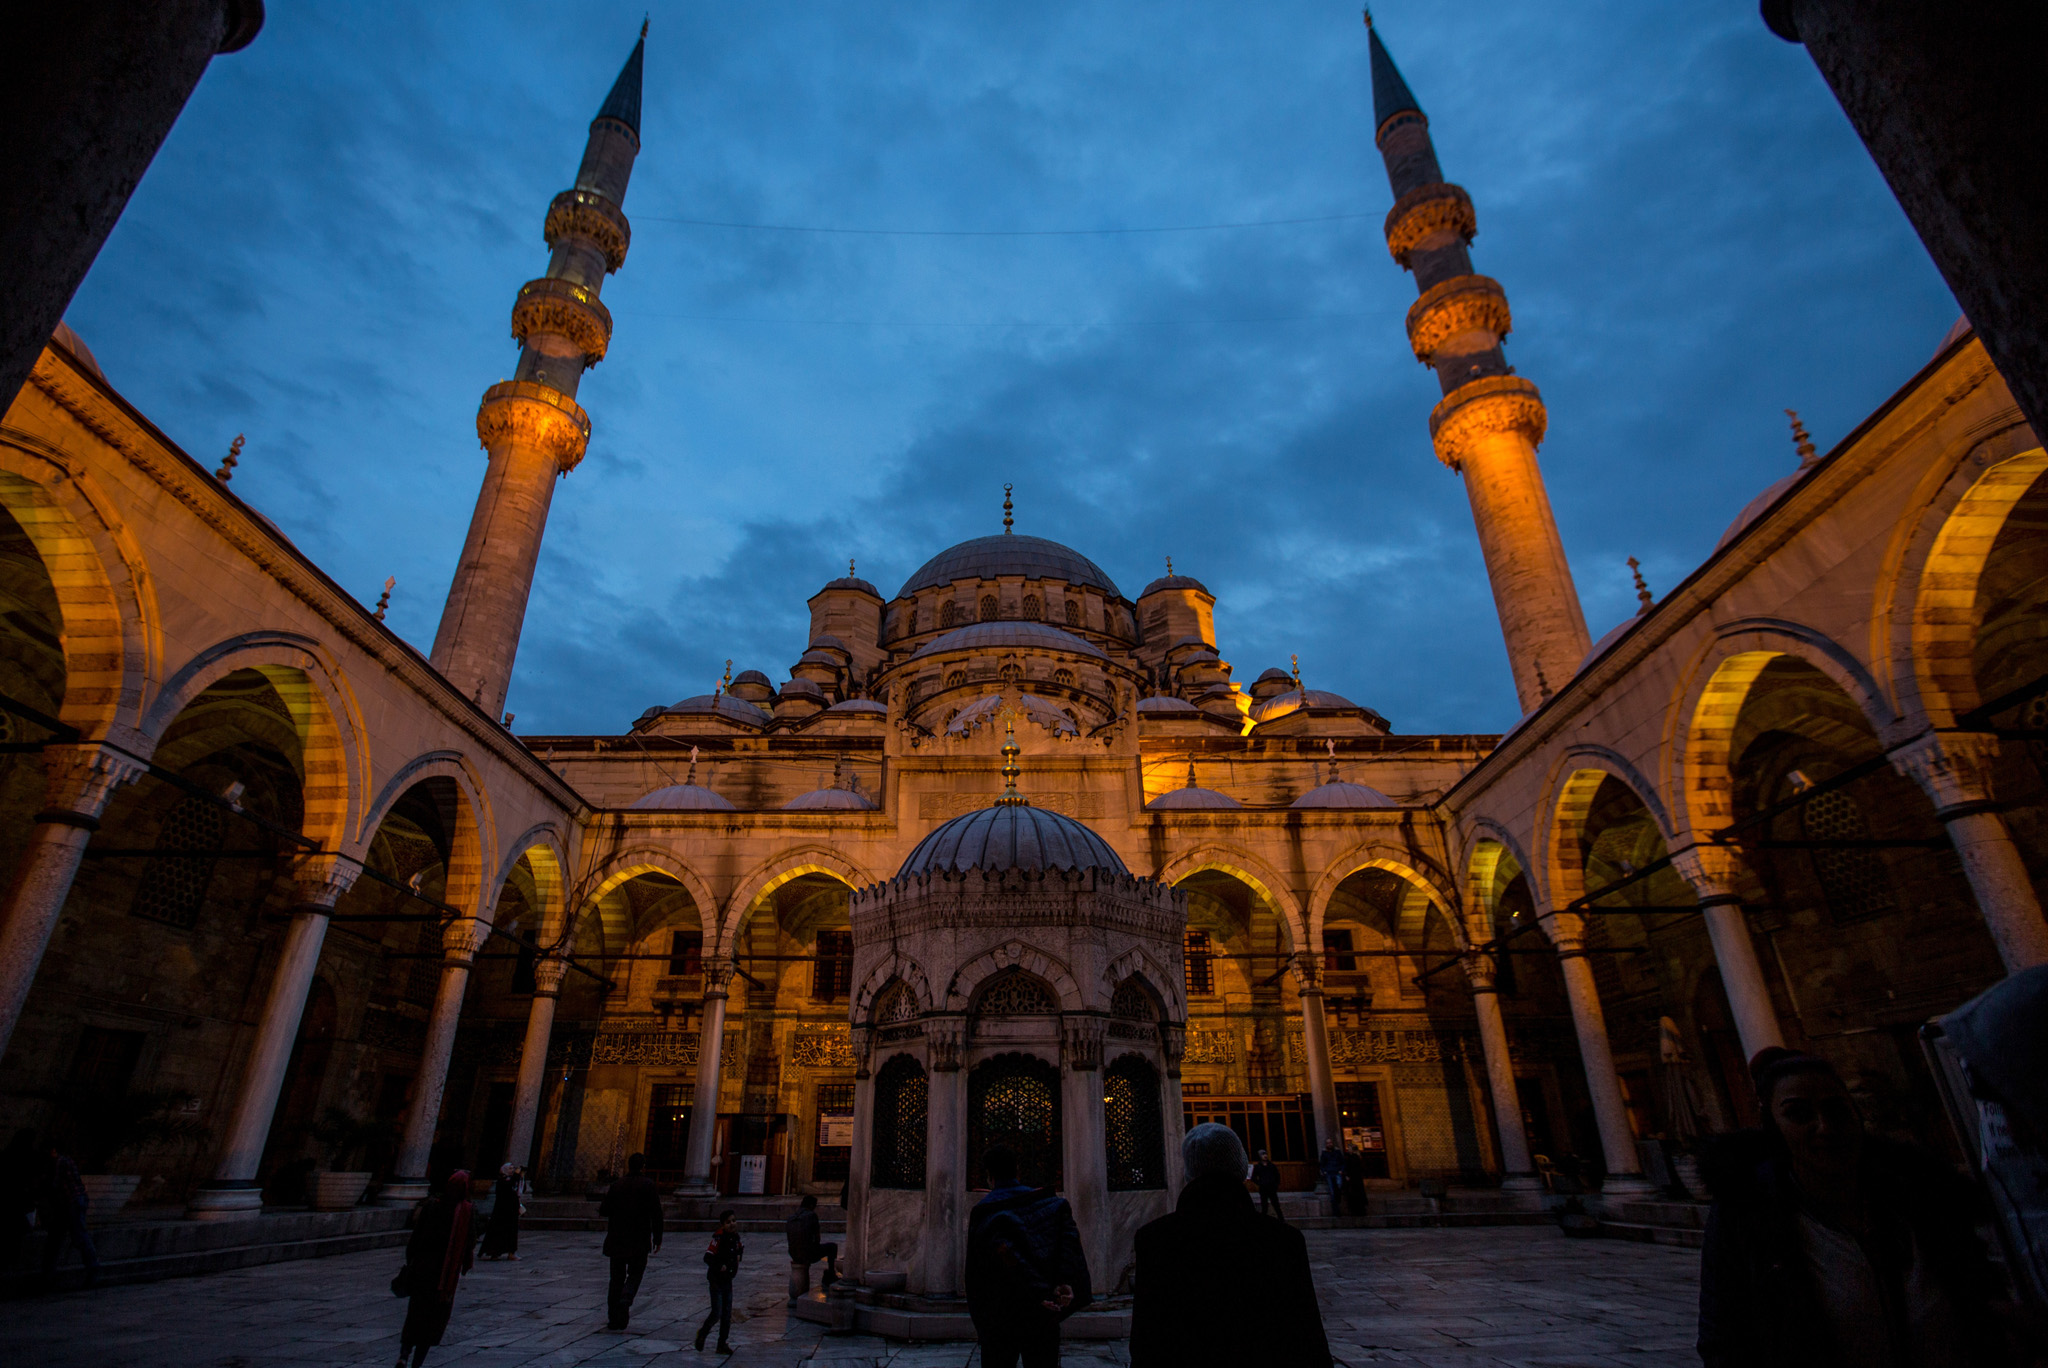 People enter the Eminonu Mosque in Istanbul, Turkey